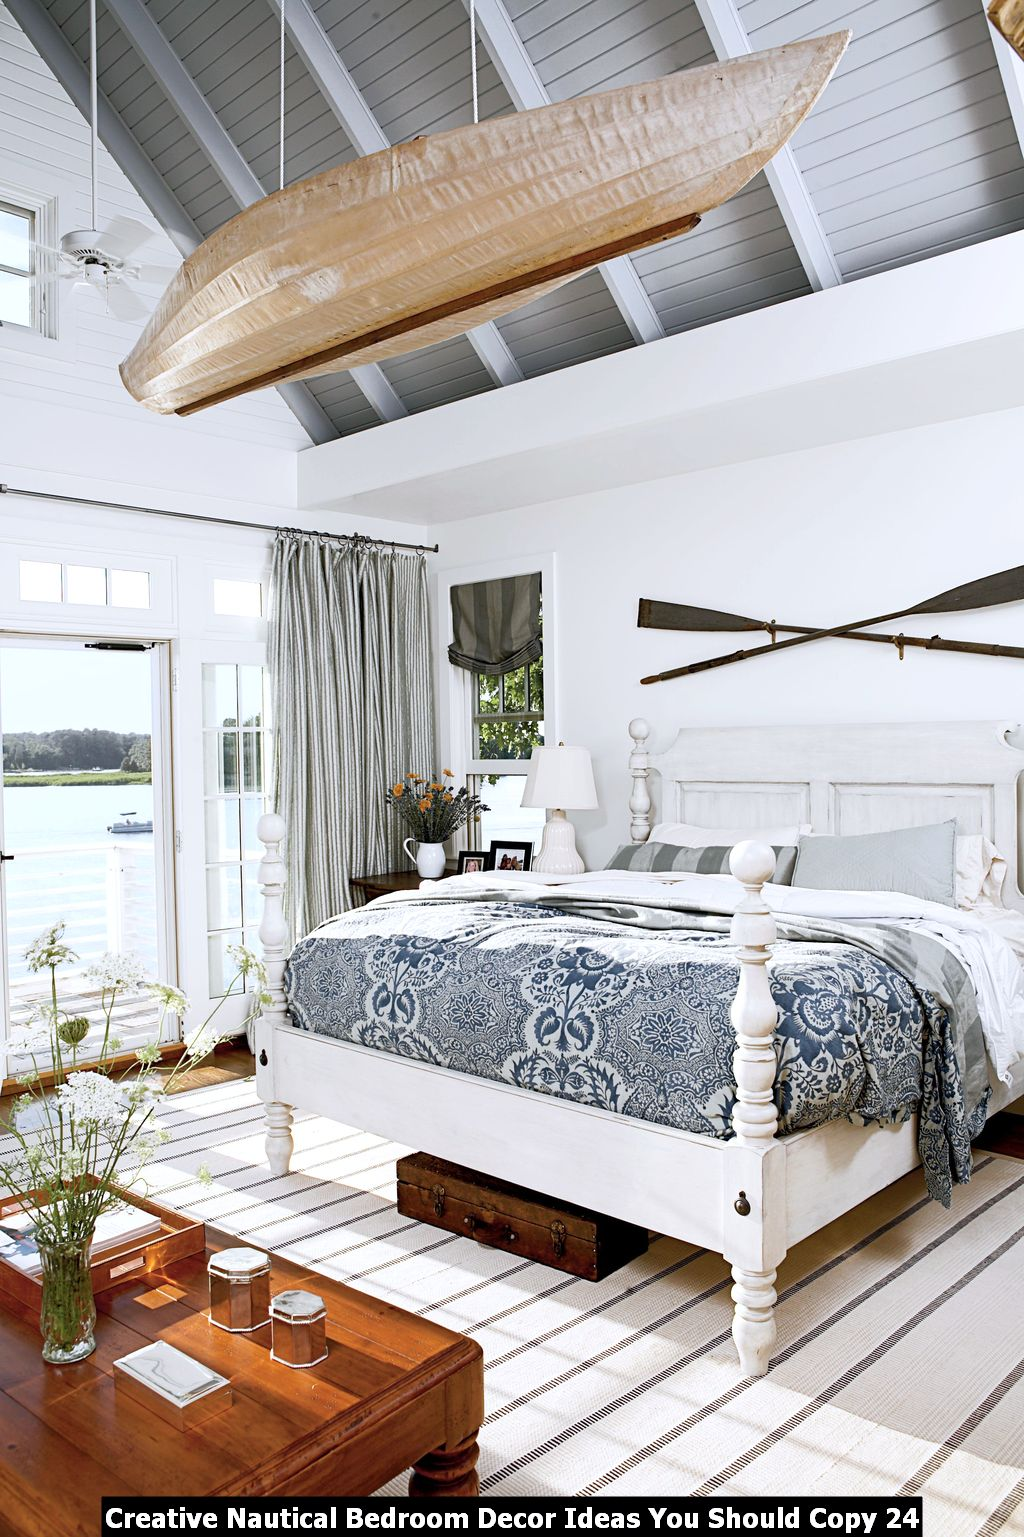 Creative Nautical Bedroom Decor Ideas You Should Copy 24